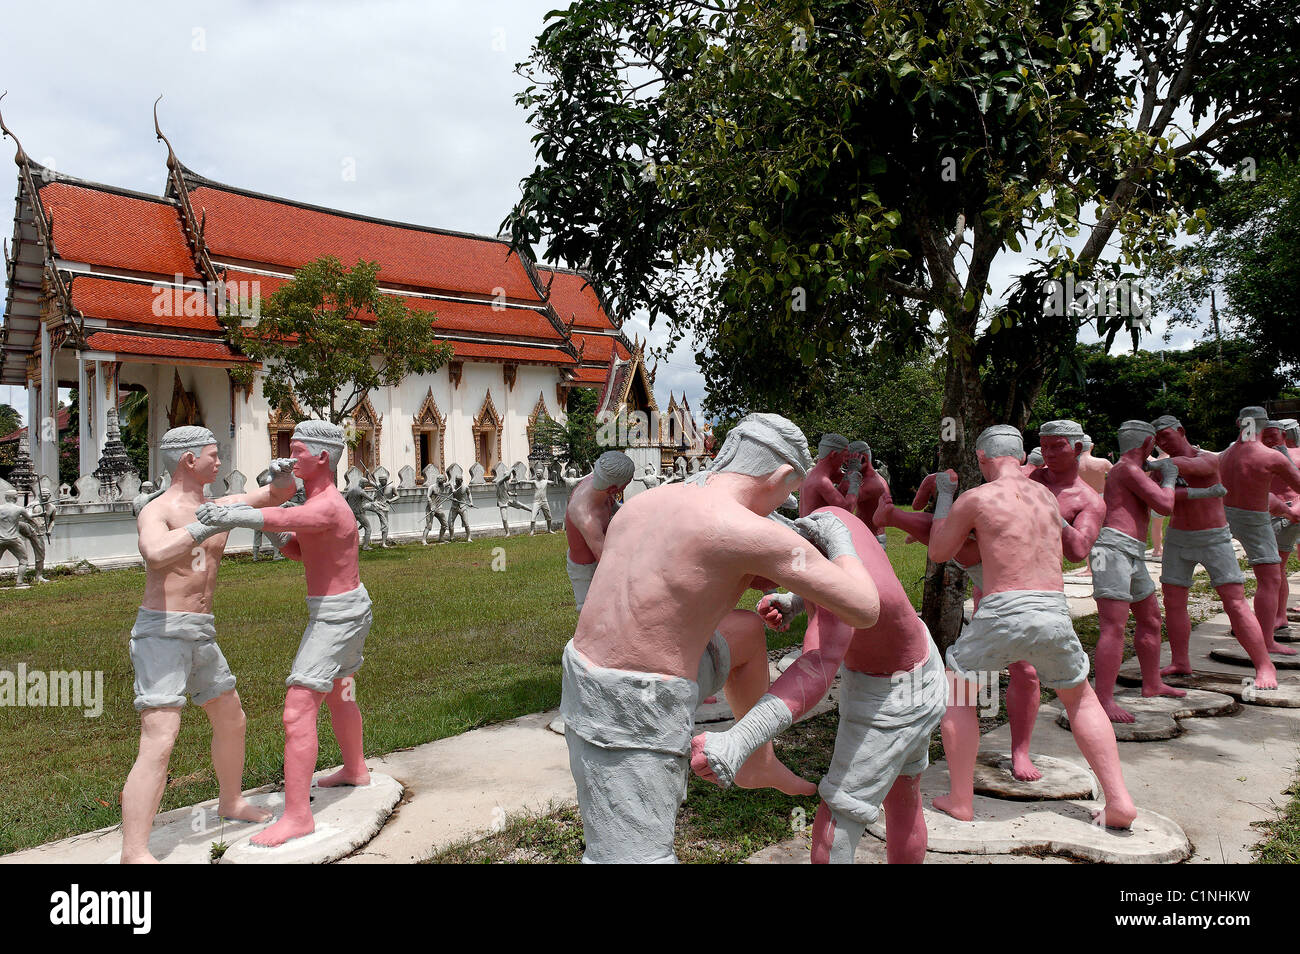 Thailand, Bangkok area, Wat Bang Kung temple, life-size models of Muay Thai fighters in different poses - Stock Image